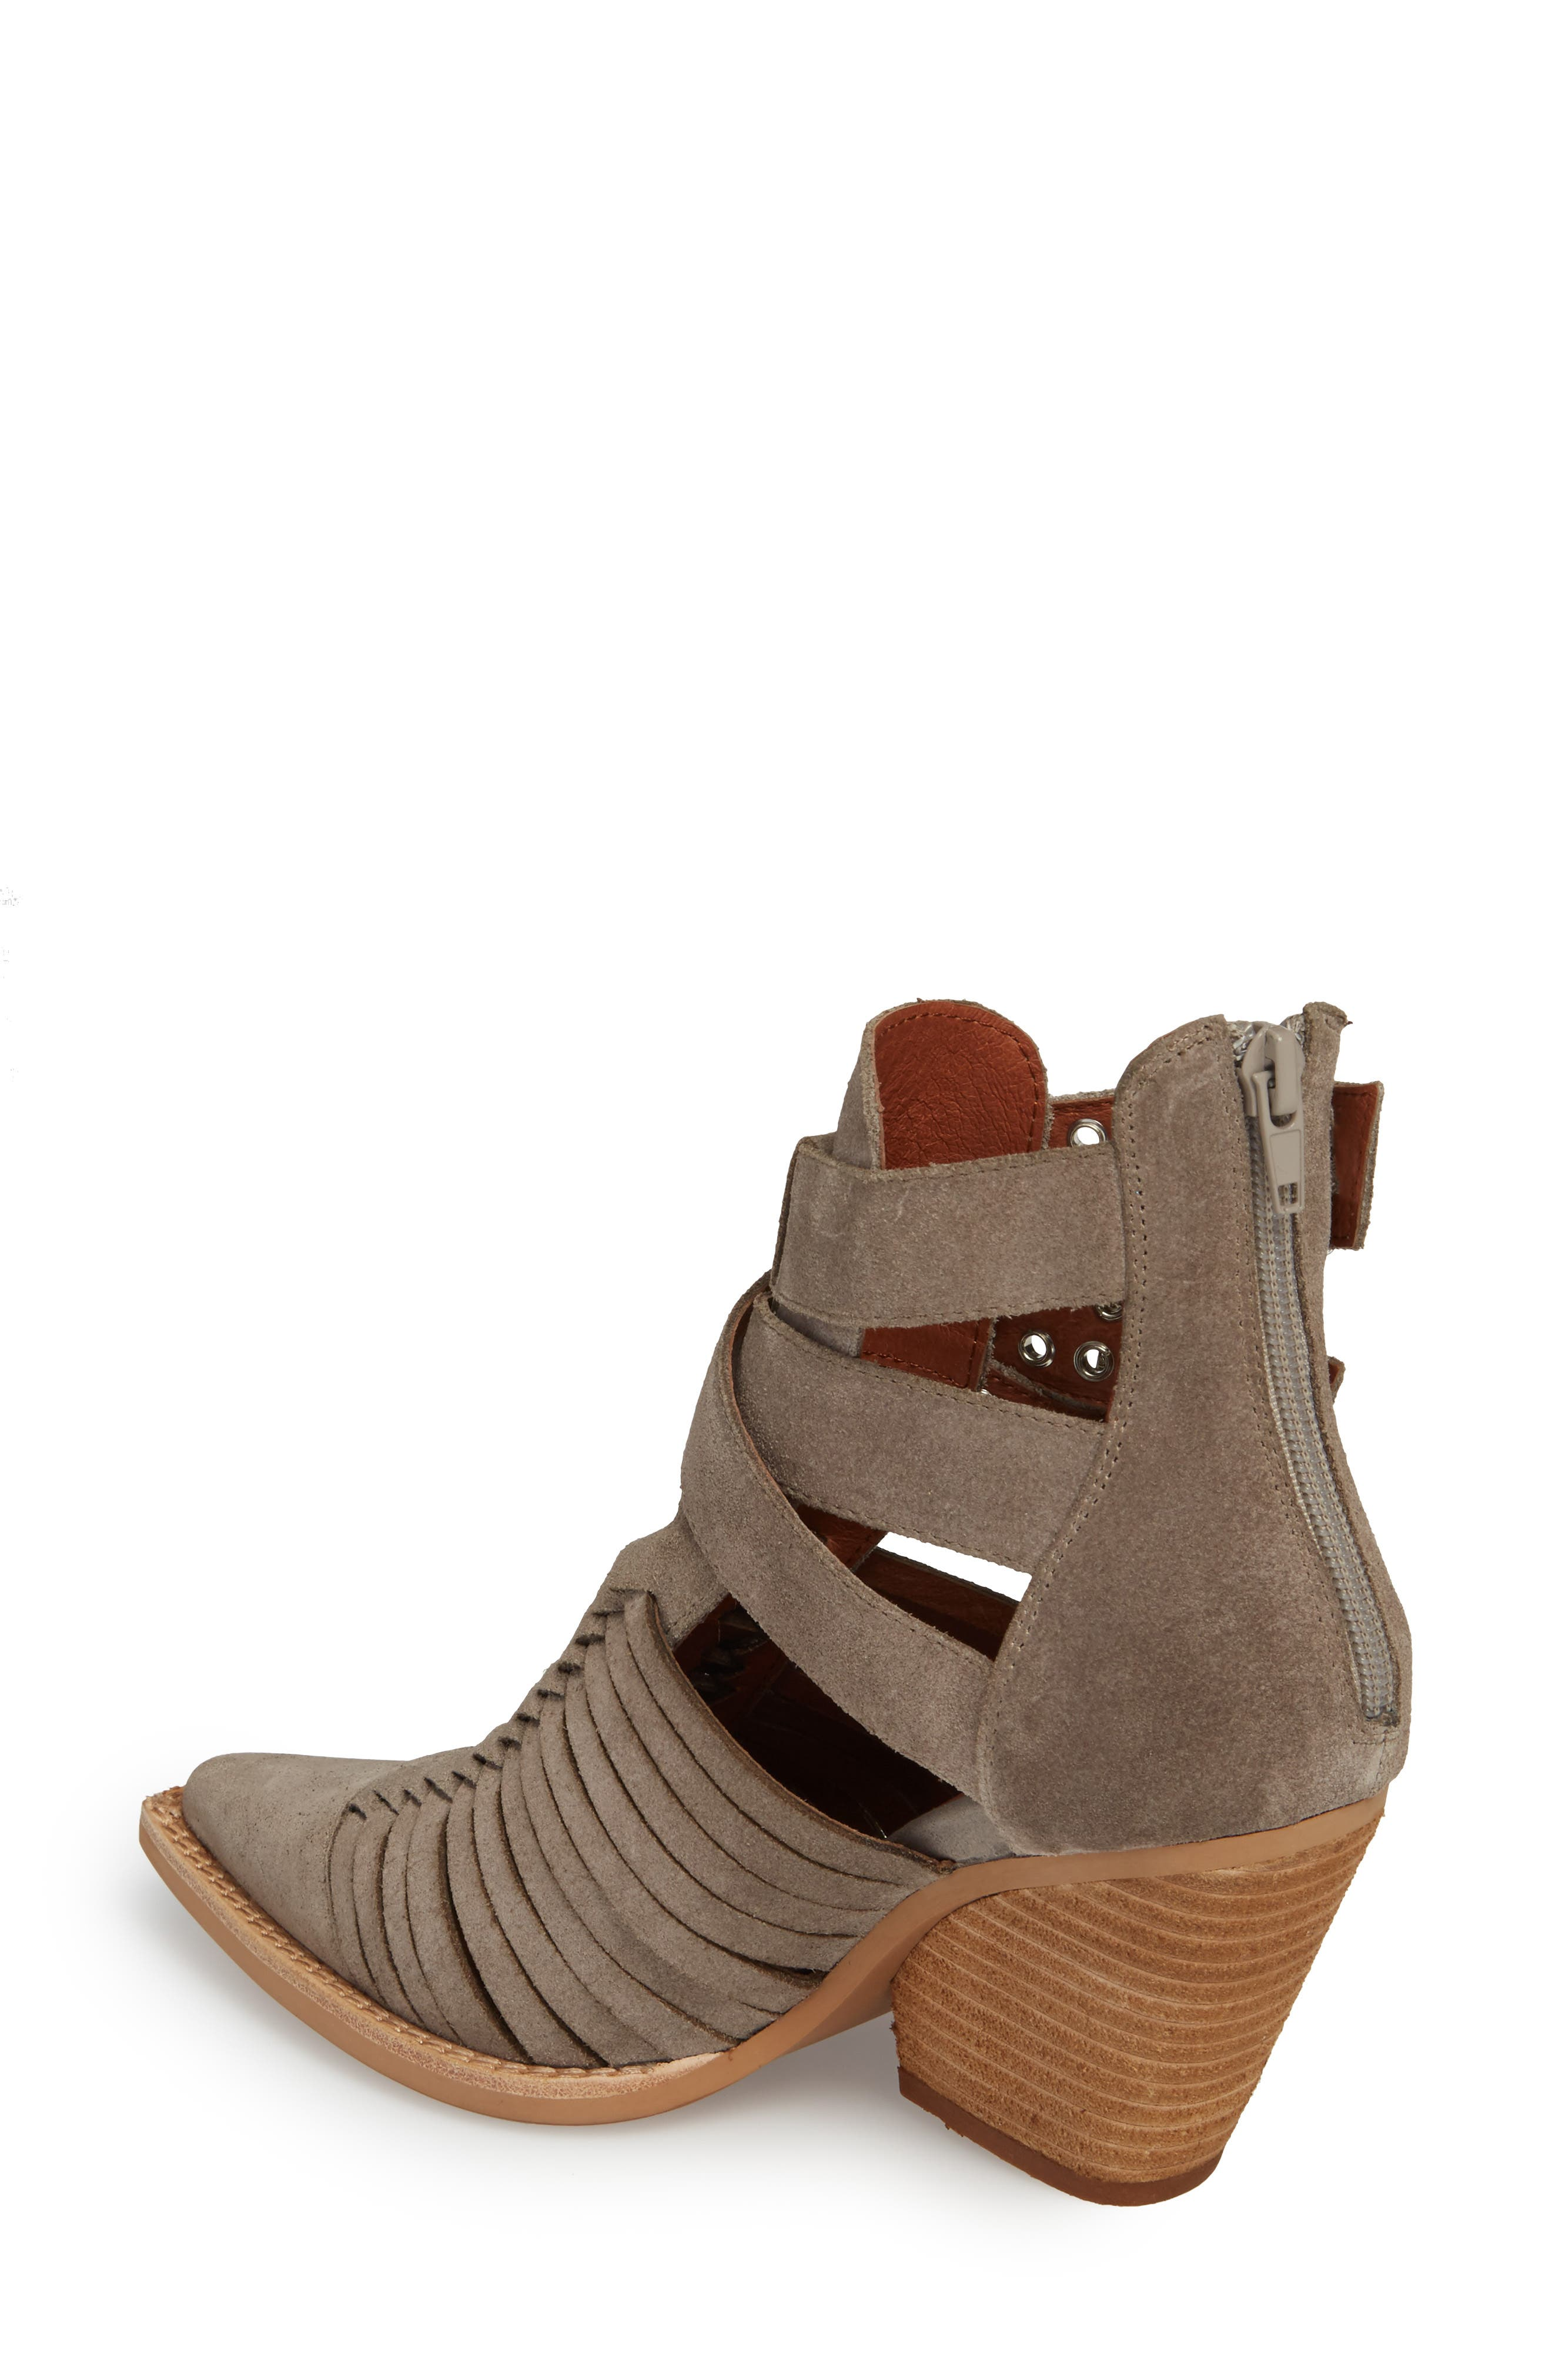 Jamison Bootie,                             Alternate thumbnail 2, color,                             Taupe Oiled Suede